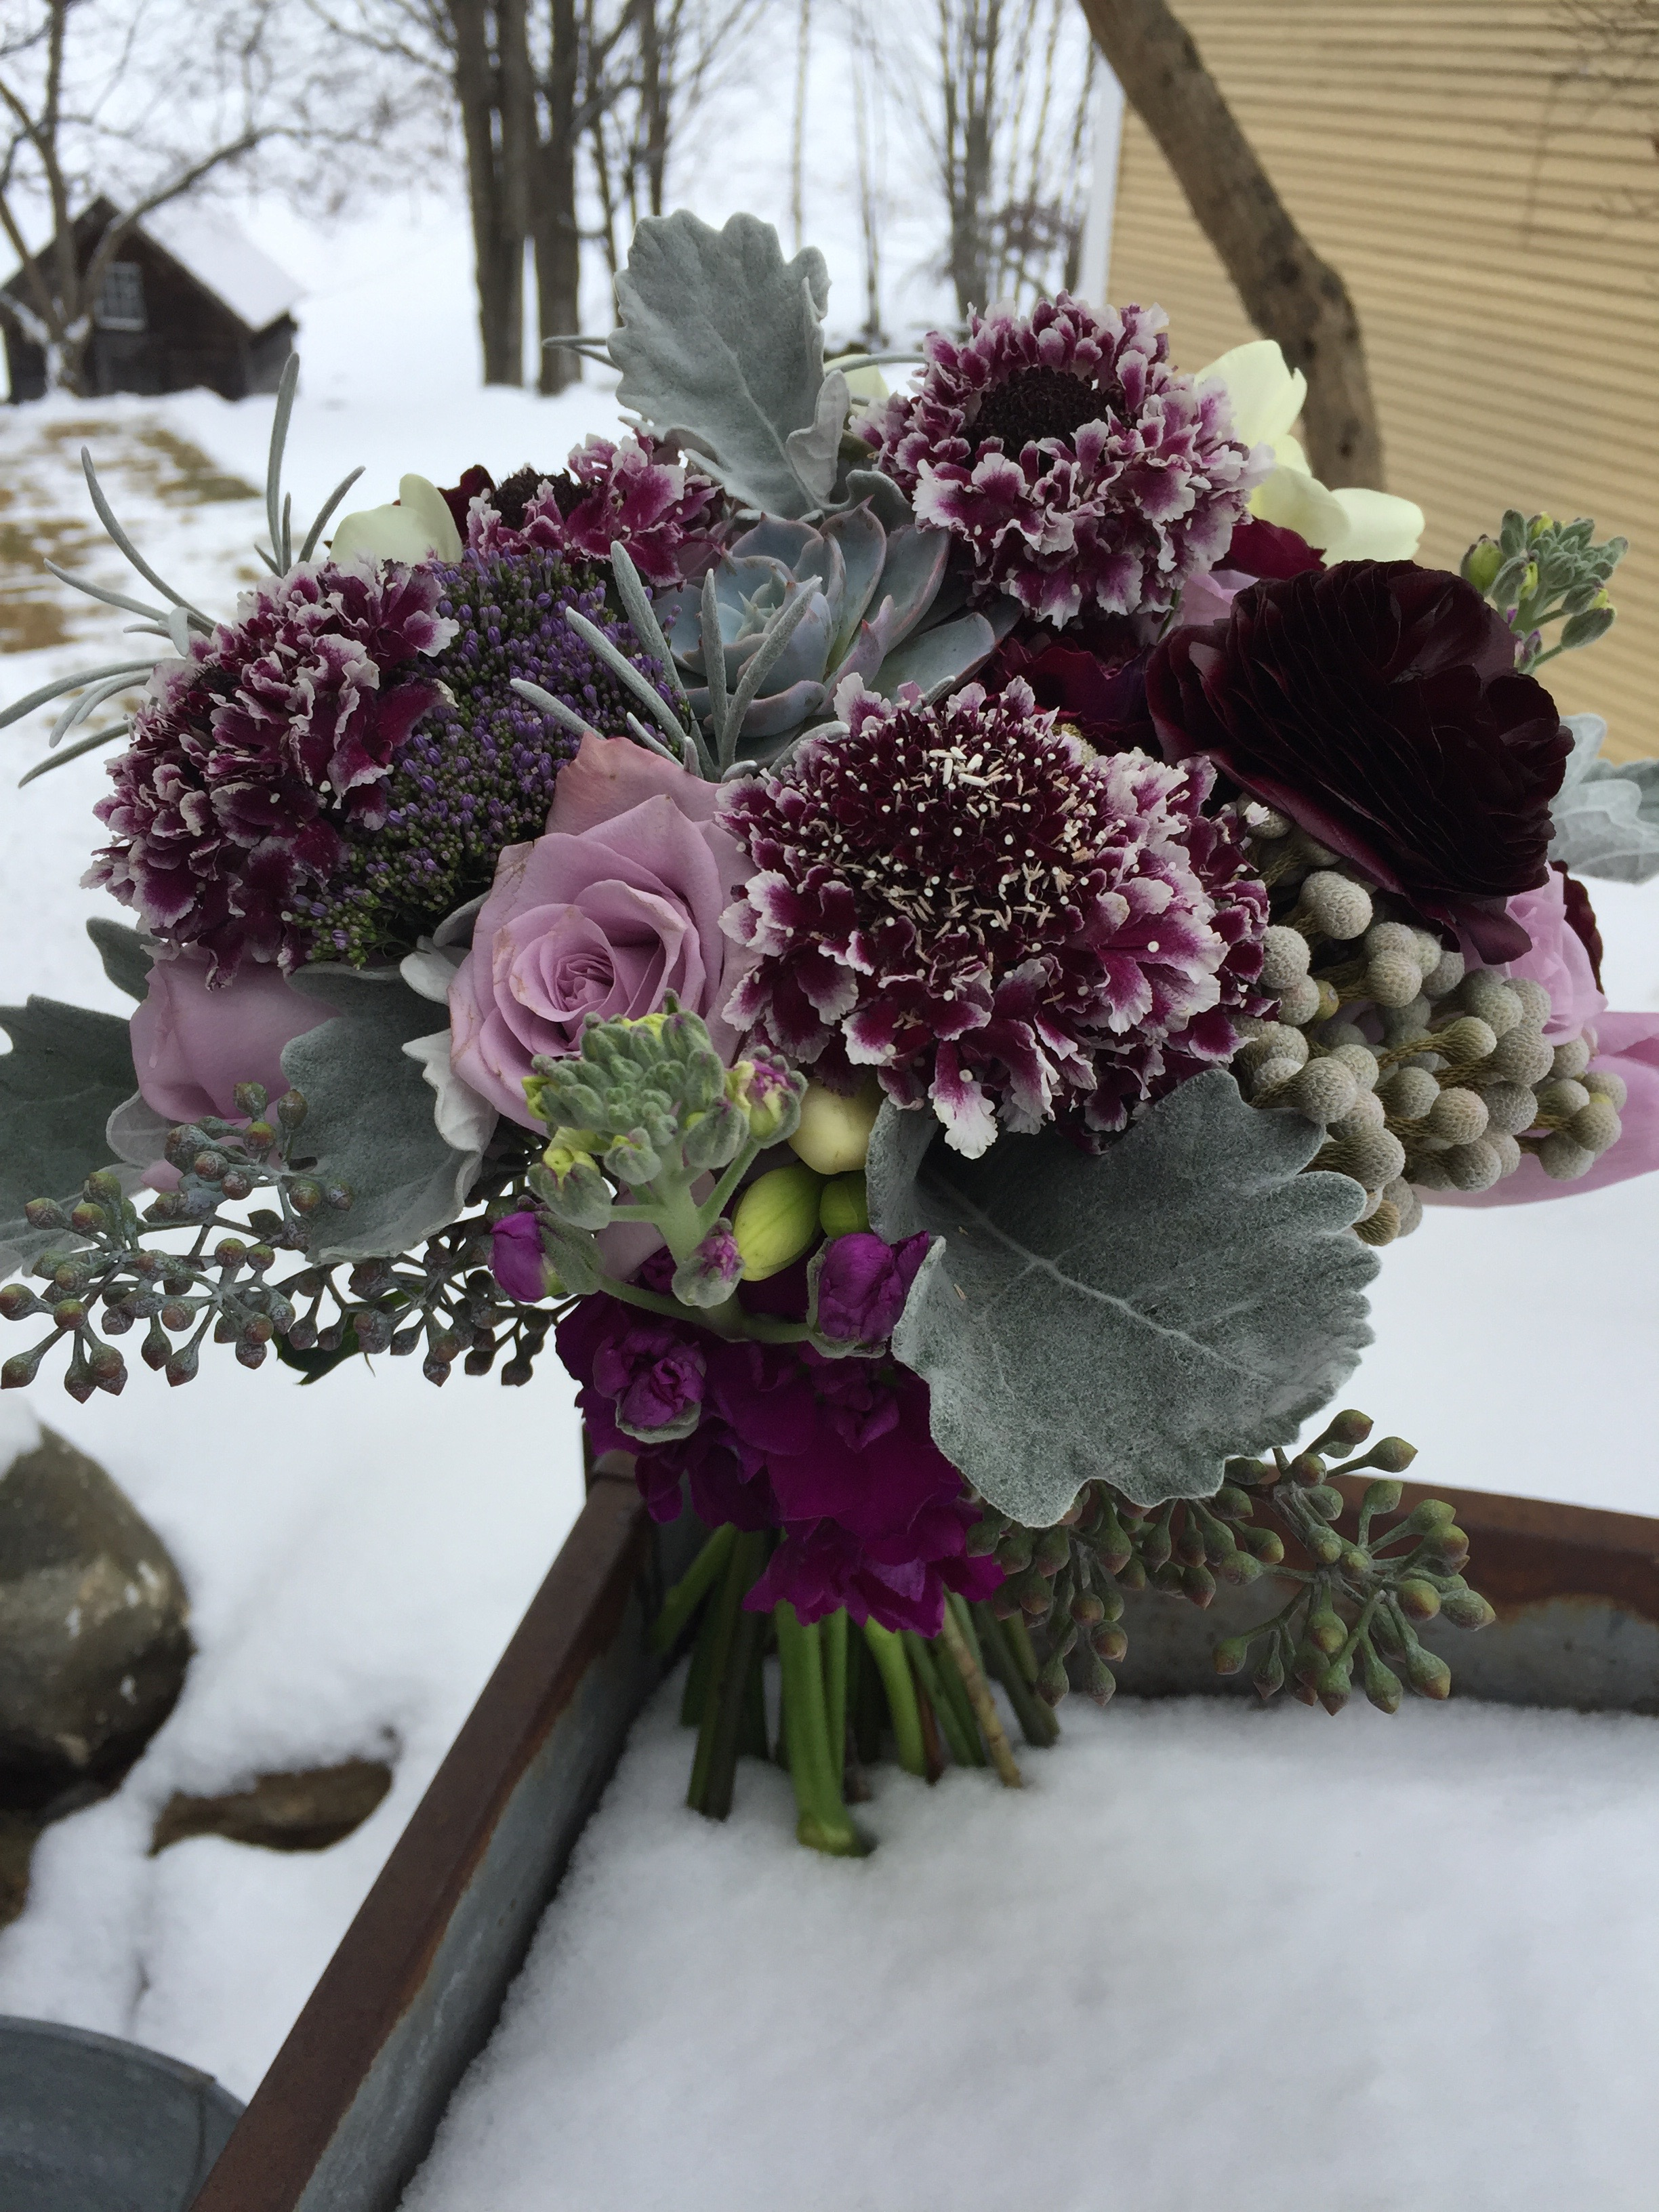 Vermont Wedding Flowers, Bridal bouquet, Weddings in Vermont, The Round Barn